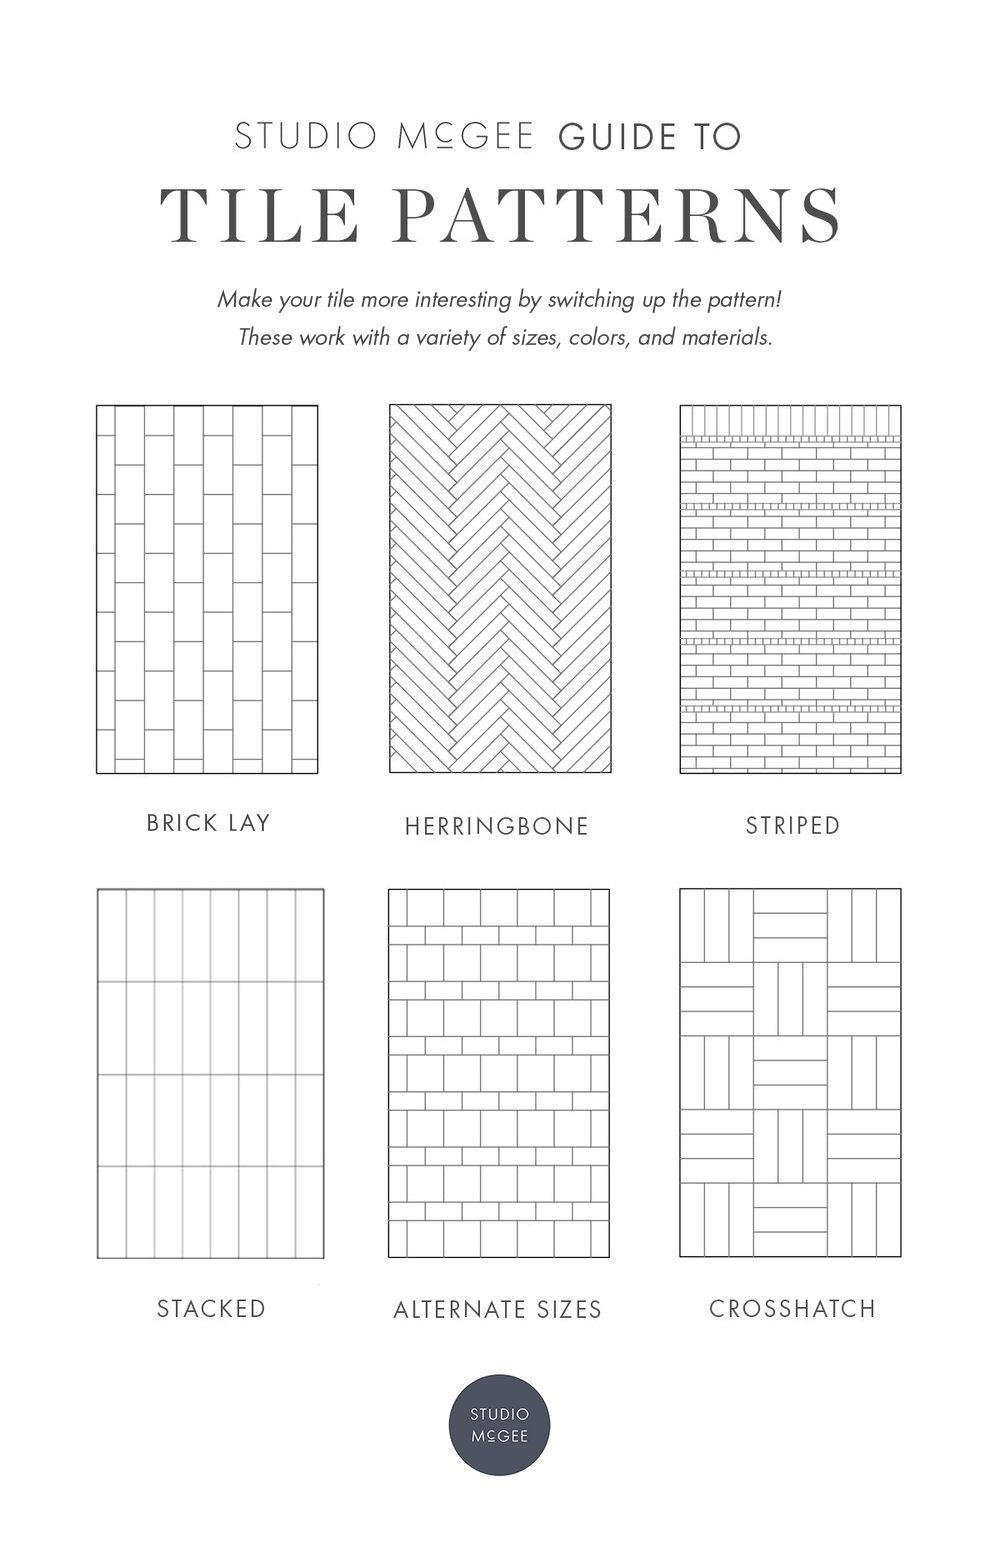 Our Guide To Patterned Tile Studio Mcgee Studio Mcgee Subway Tile Design Tile Layout Patterns